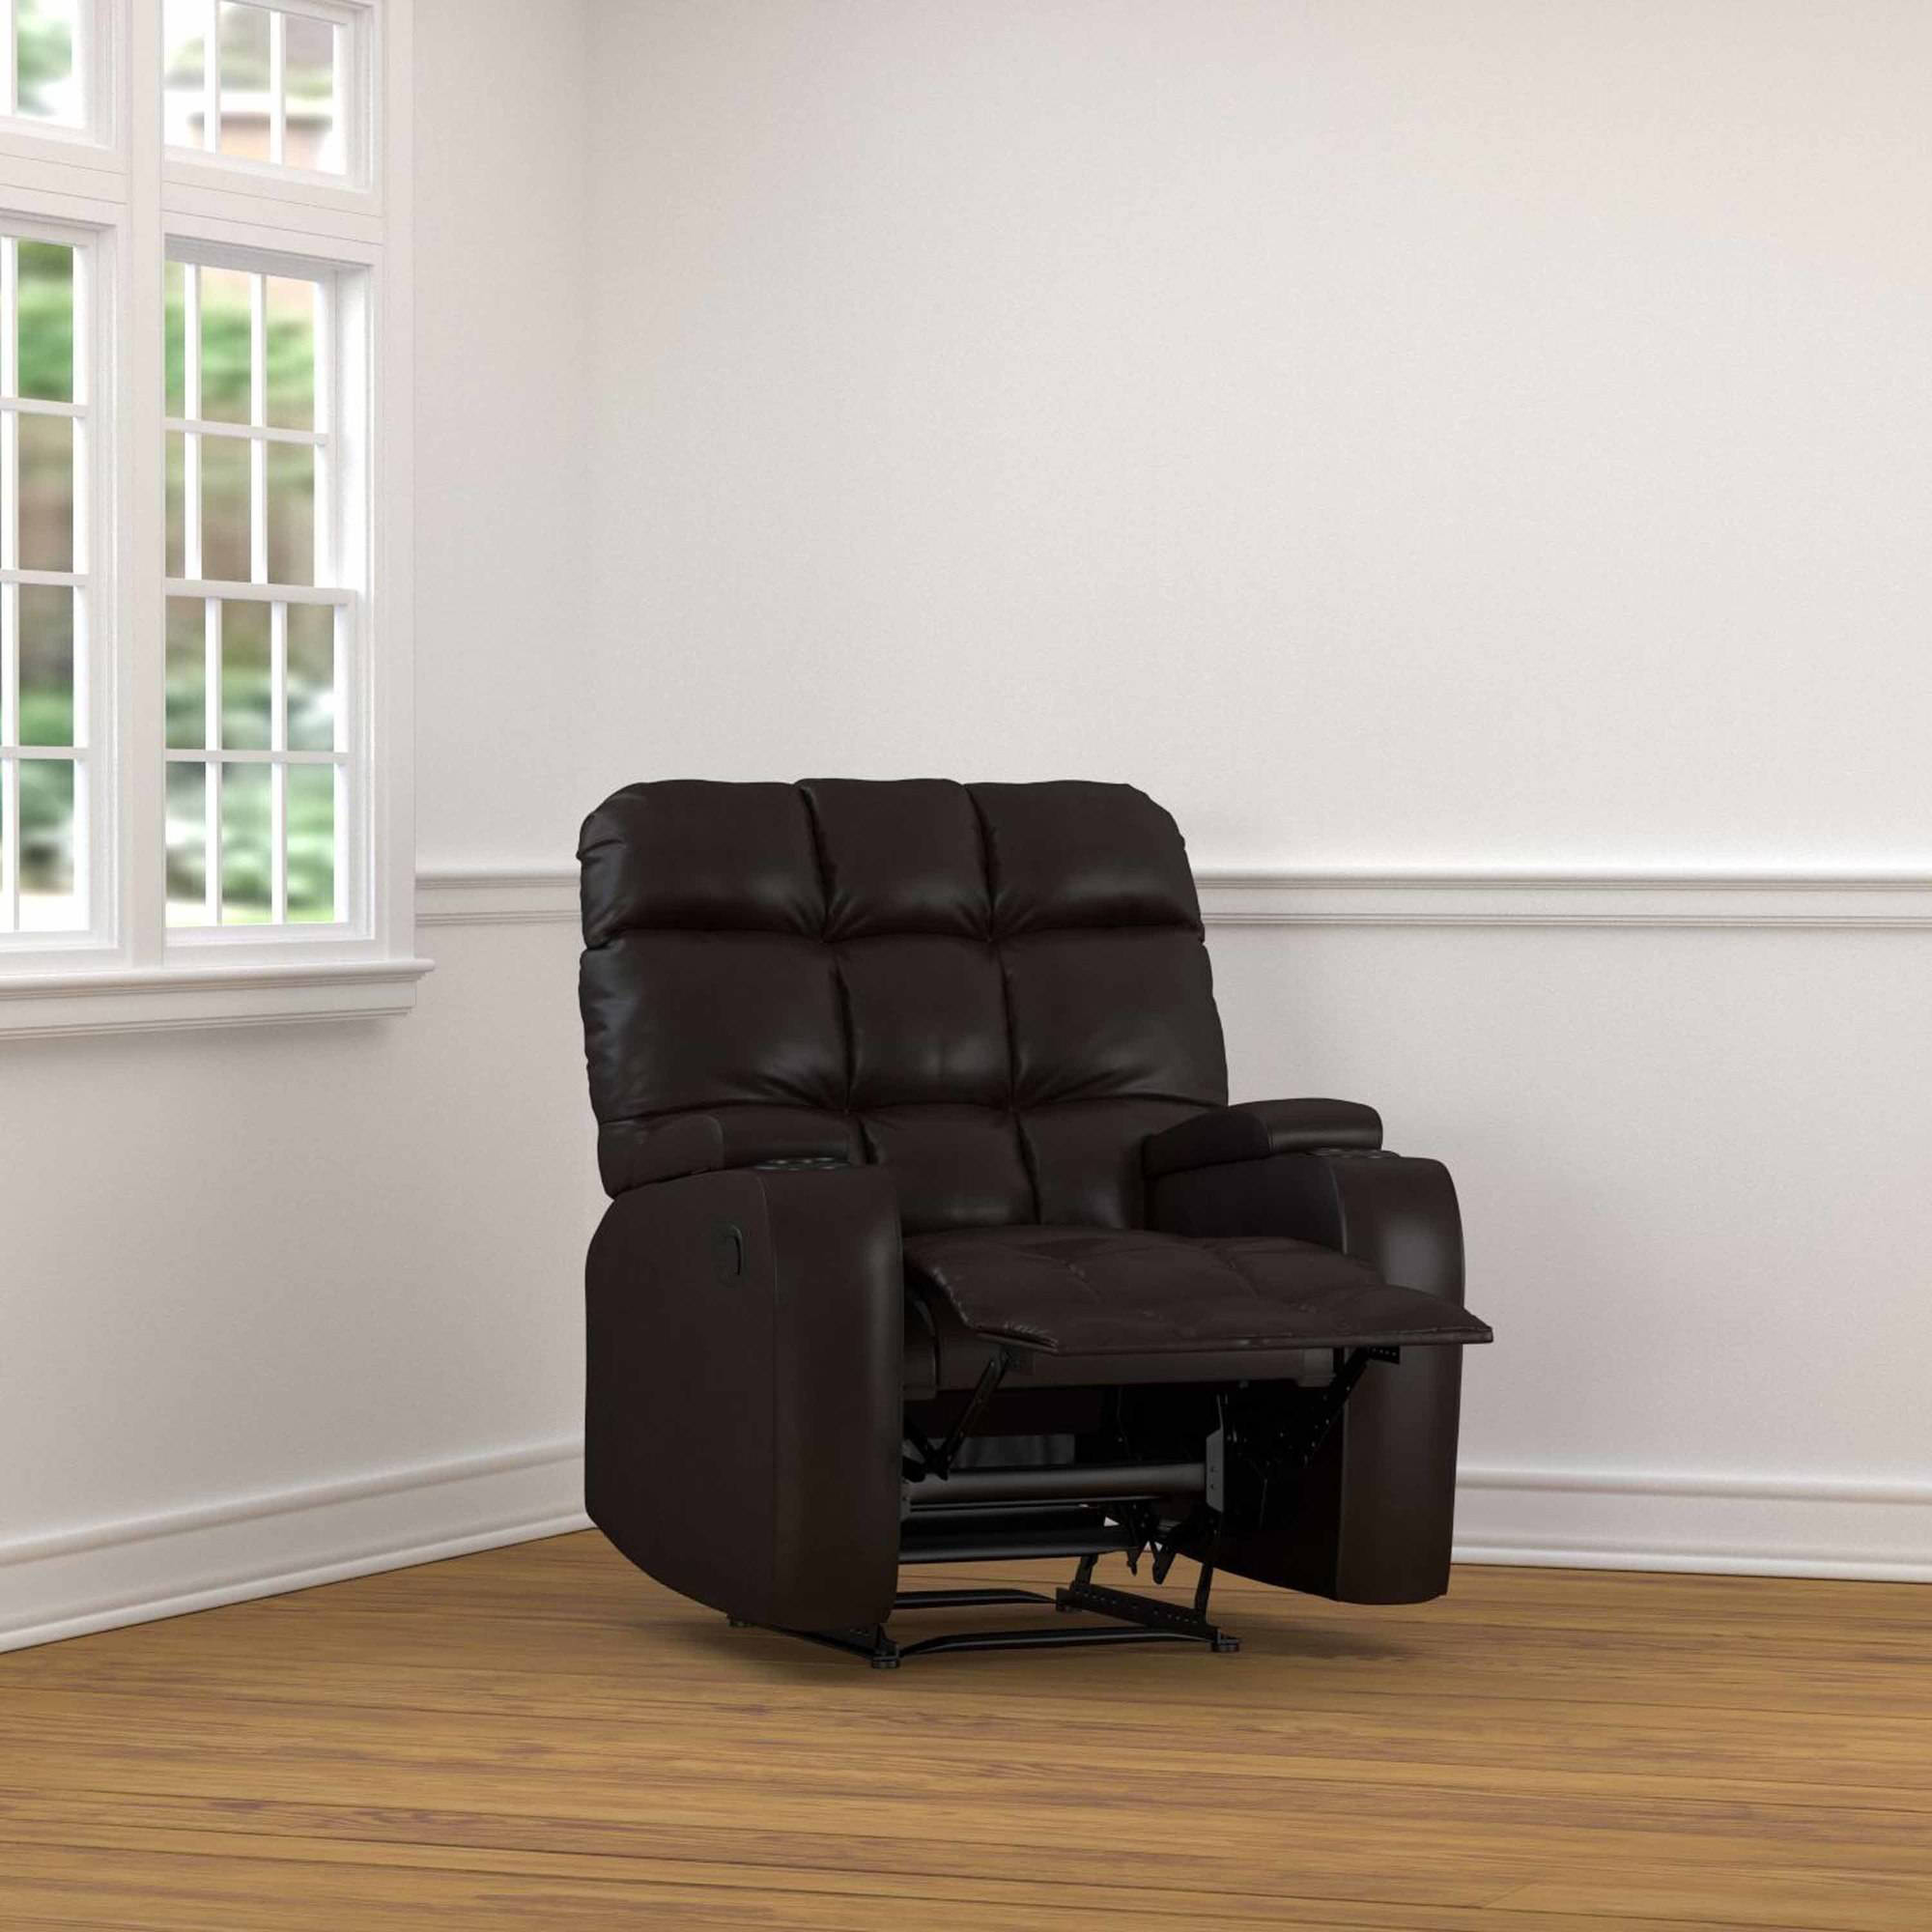 ProLounger Wall Hugger Storage Recliner Chair in Renu Leather